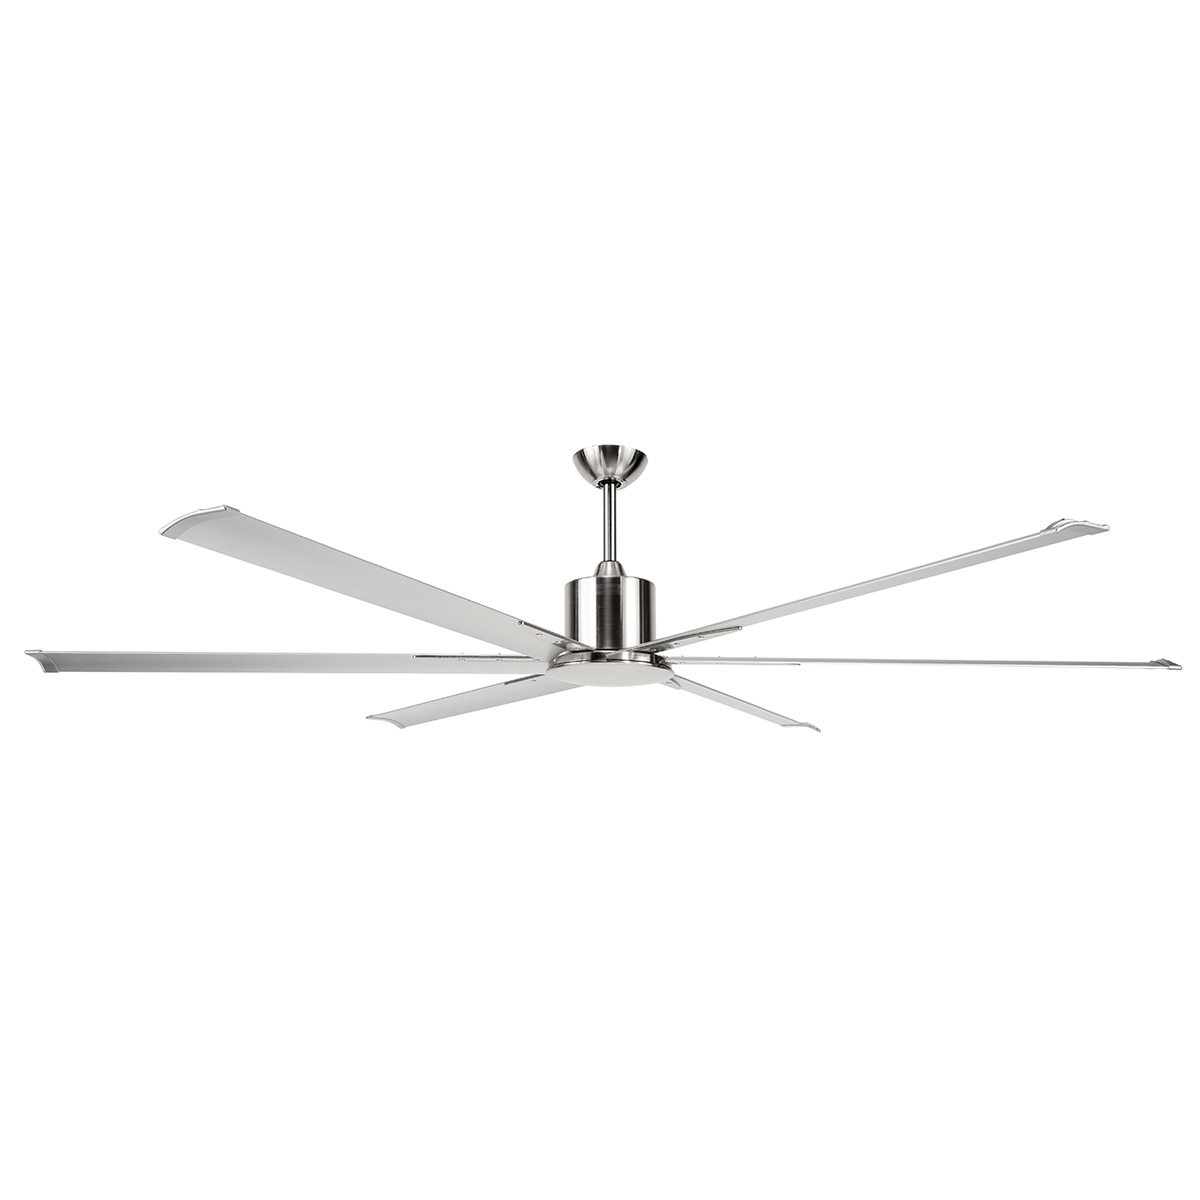 Trendy Maelstrom Ceiling Fan: Dc Motor 84″ With Remote (Satin Nickel Pertaining To Outdoor Ceiling Fans With Dc Motors (View 17 of 20)